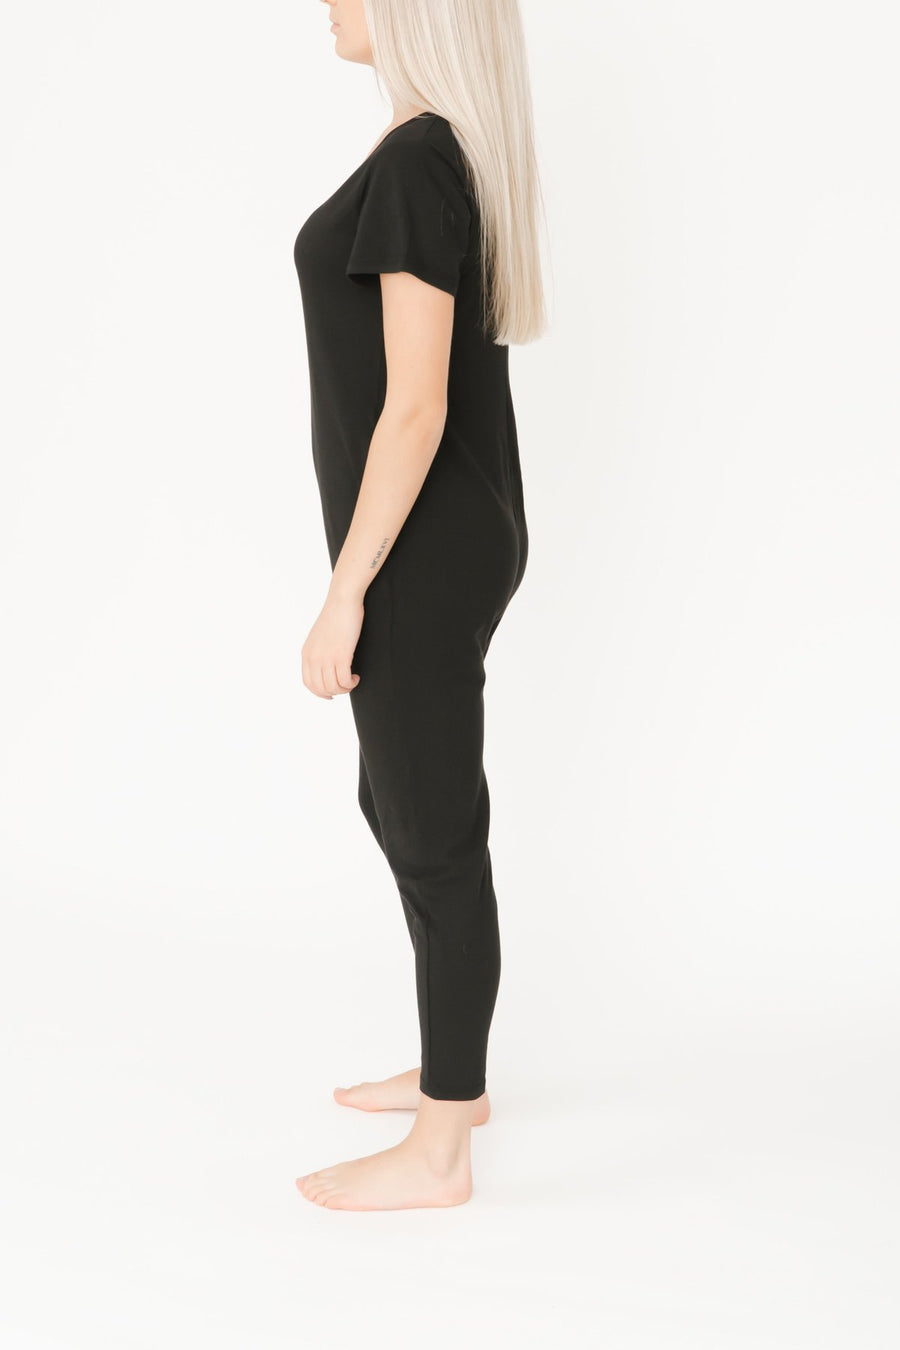 Sunday Romper - Black